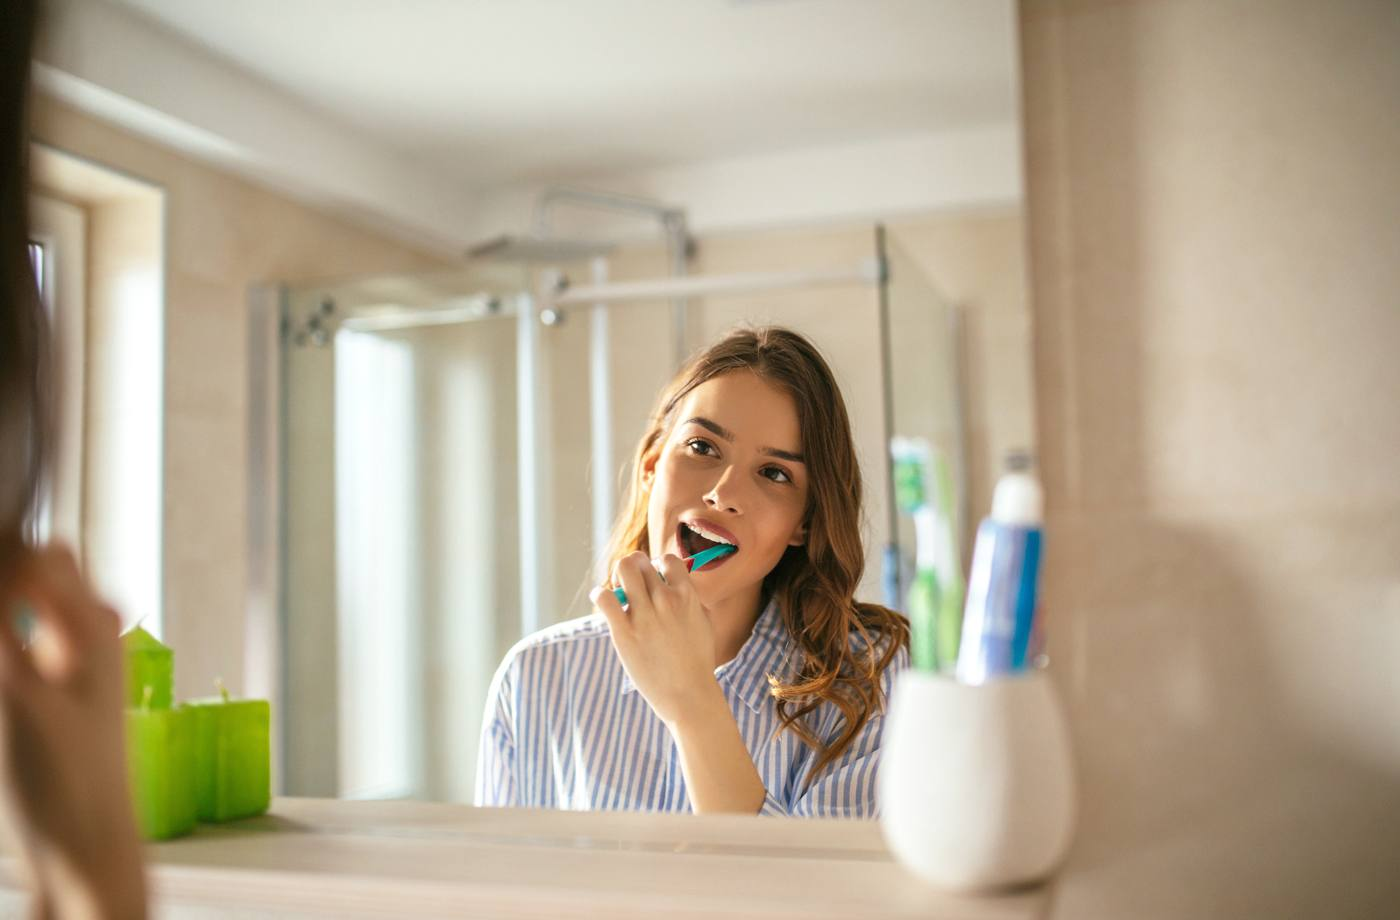 Thumbnail for This common toothpaste ingredient wreaks inflammatory havoc on your gut health, according to new research